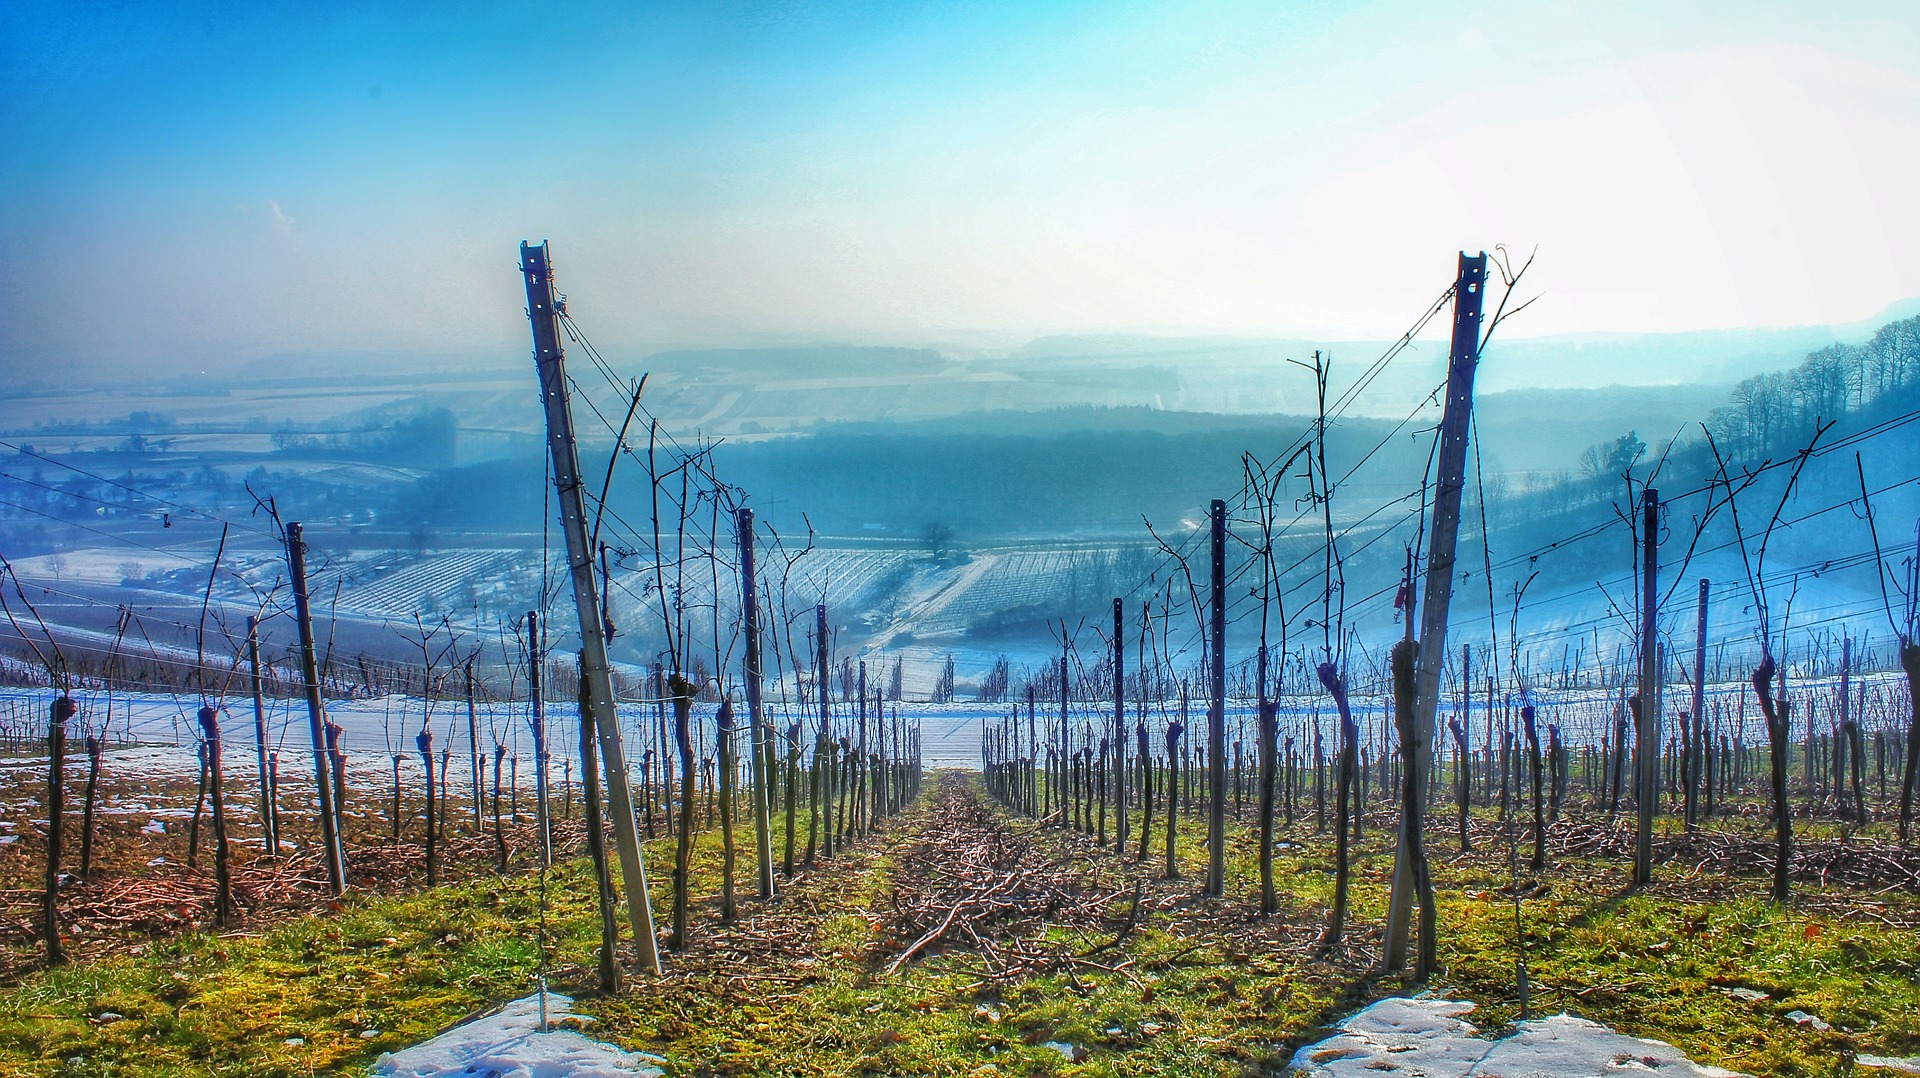 The health of our vineyards: the telltale signs - cover